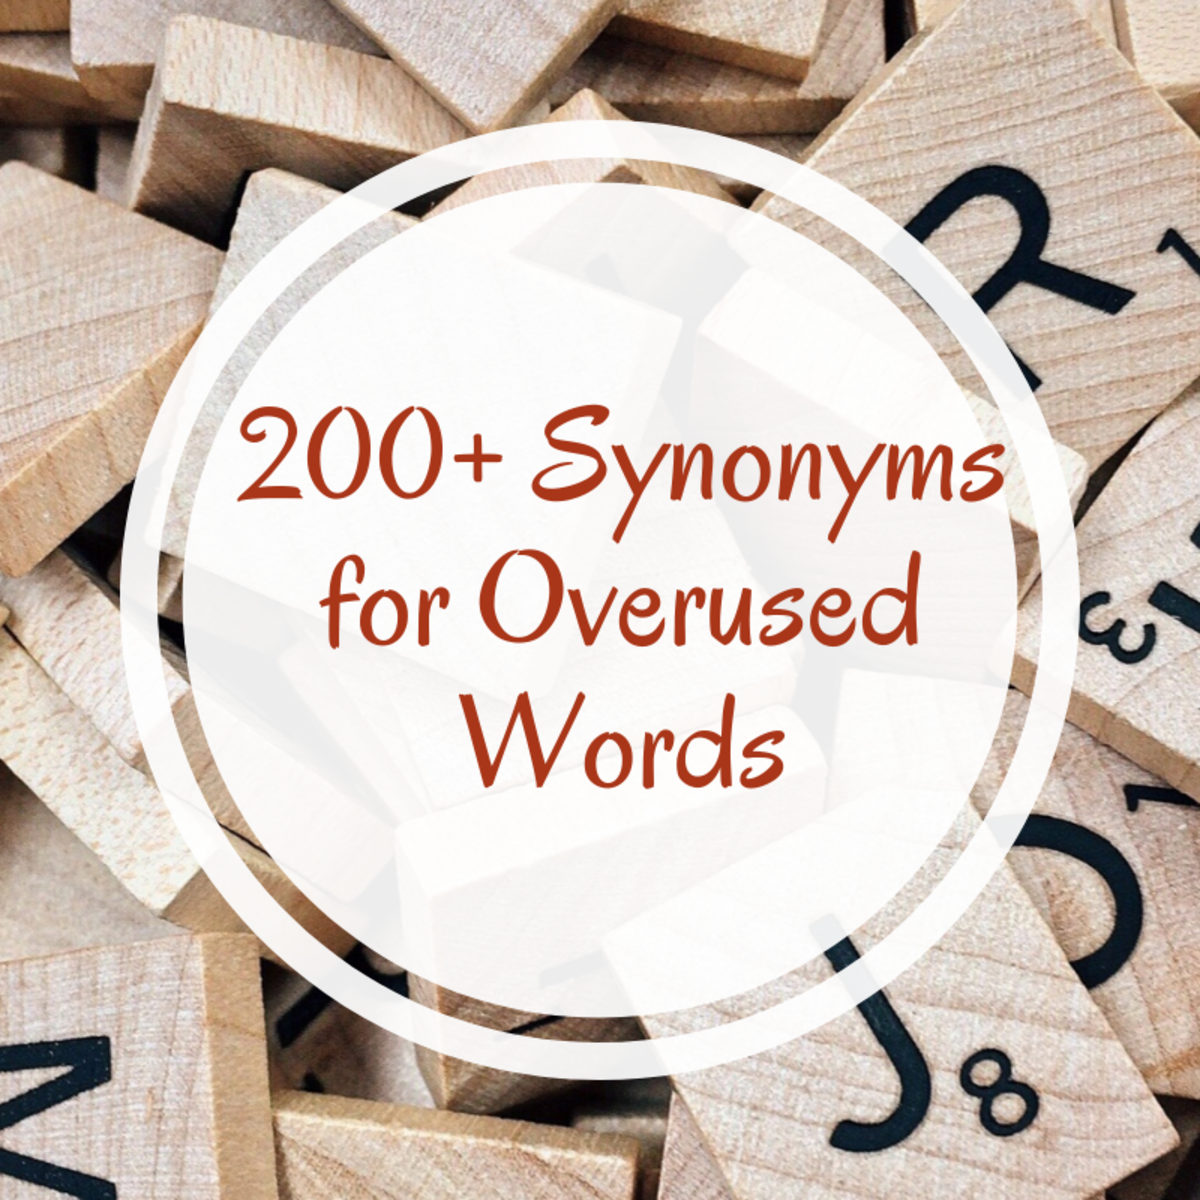 Sick of using the same boring words (run, said, big, etc.) when writing? Here are a few synonyms for those tired words.